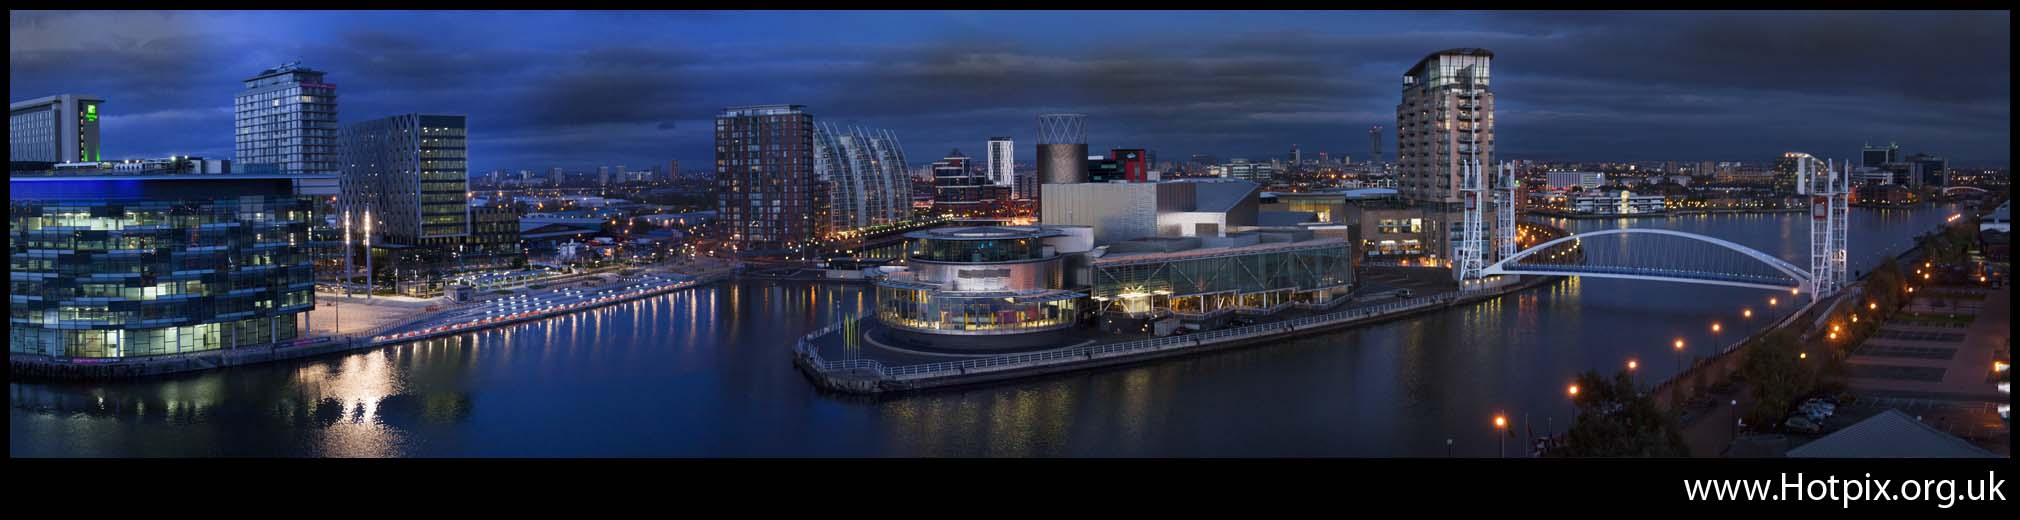 salford,queys,quays,night,dusk,shot,image,tripod,golden,blue,hour,lights,evening,pano,panorama,joiner,stitched,stitch,stiching,hdr,tony,smith,tonysmith,hotpix,hotpics,hotpicks,hot,pix,picks,pics,UK,england,GB,great,britain,united,kingdom,nw,northwest,north,west,holiday,inn,express,manchester,ship,canal,company,peel,holdings,twilight,twillight,low,light,lowlight,hand,held,handheld,ColorPhotoAward,tony smith photography,tdktony,tdk,tdktonysmith,#tonysmithhotpix,#tonysmithotpix